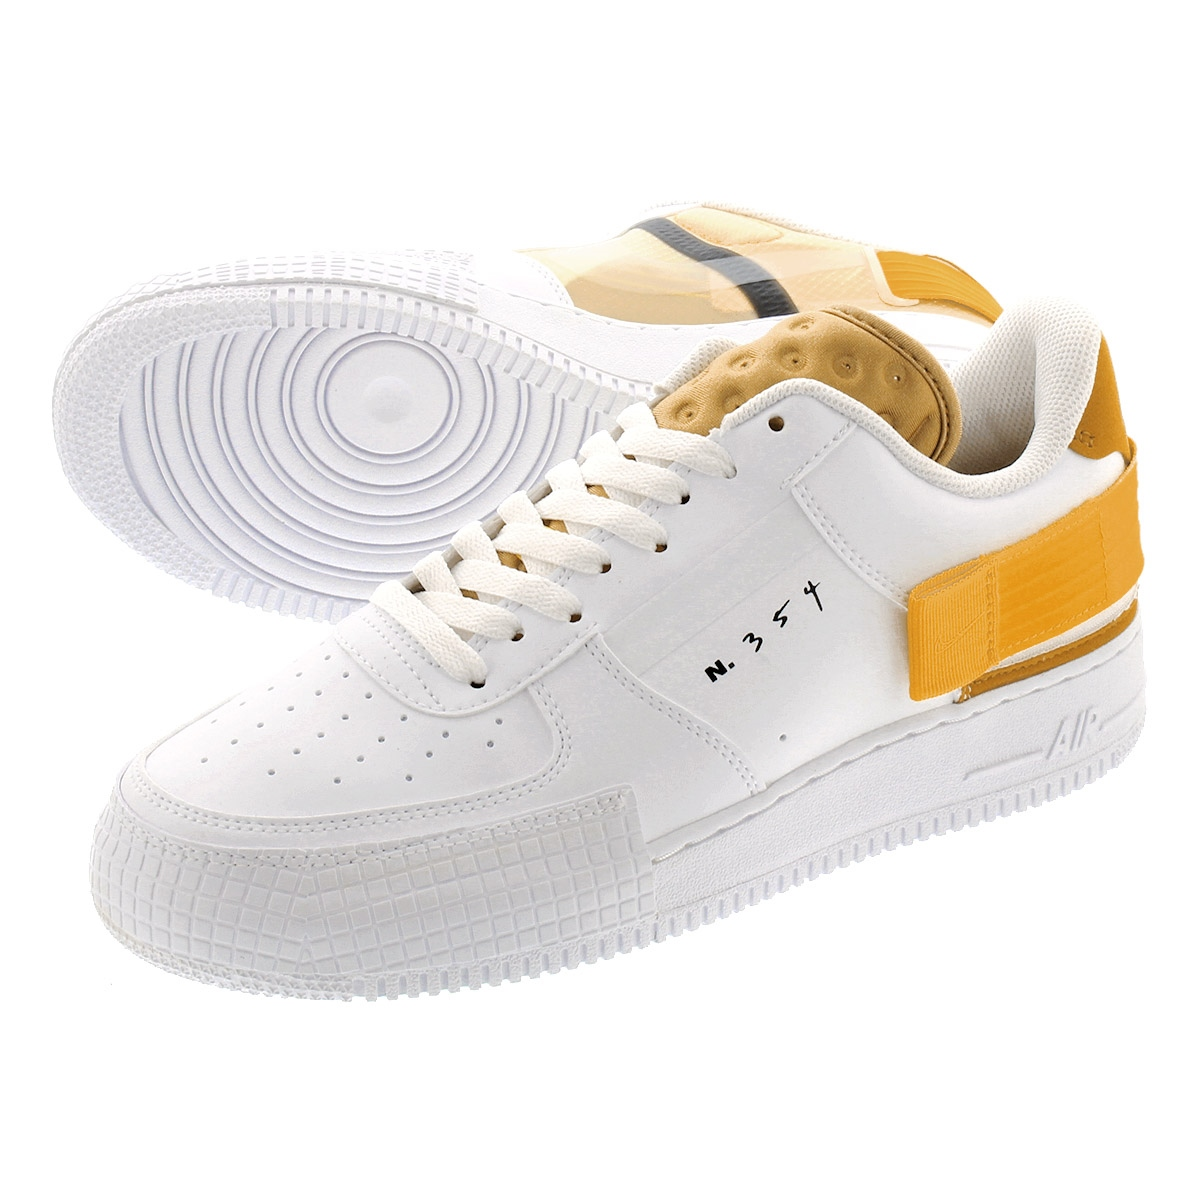 NIKE AIR FORCE 1 TYPE Nike air force one type WHITEUNIVERSITY GOLD at7859 100